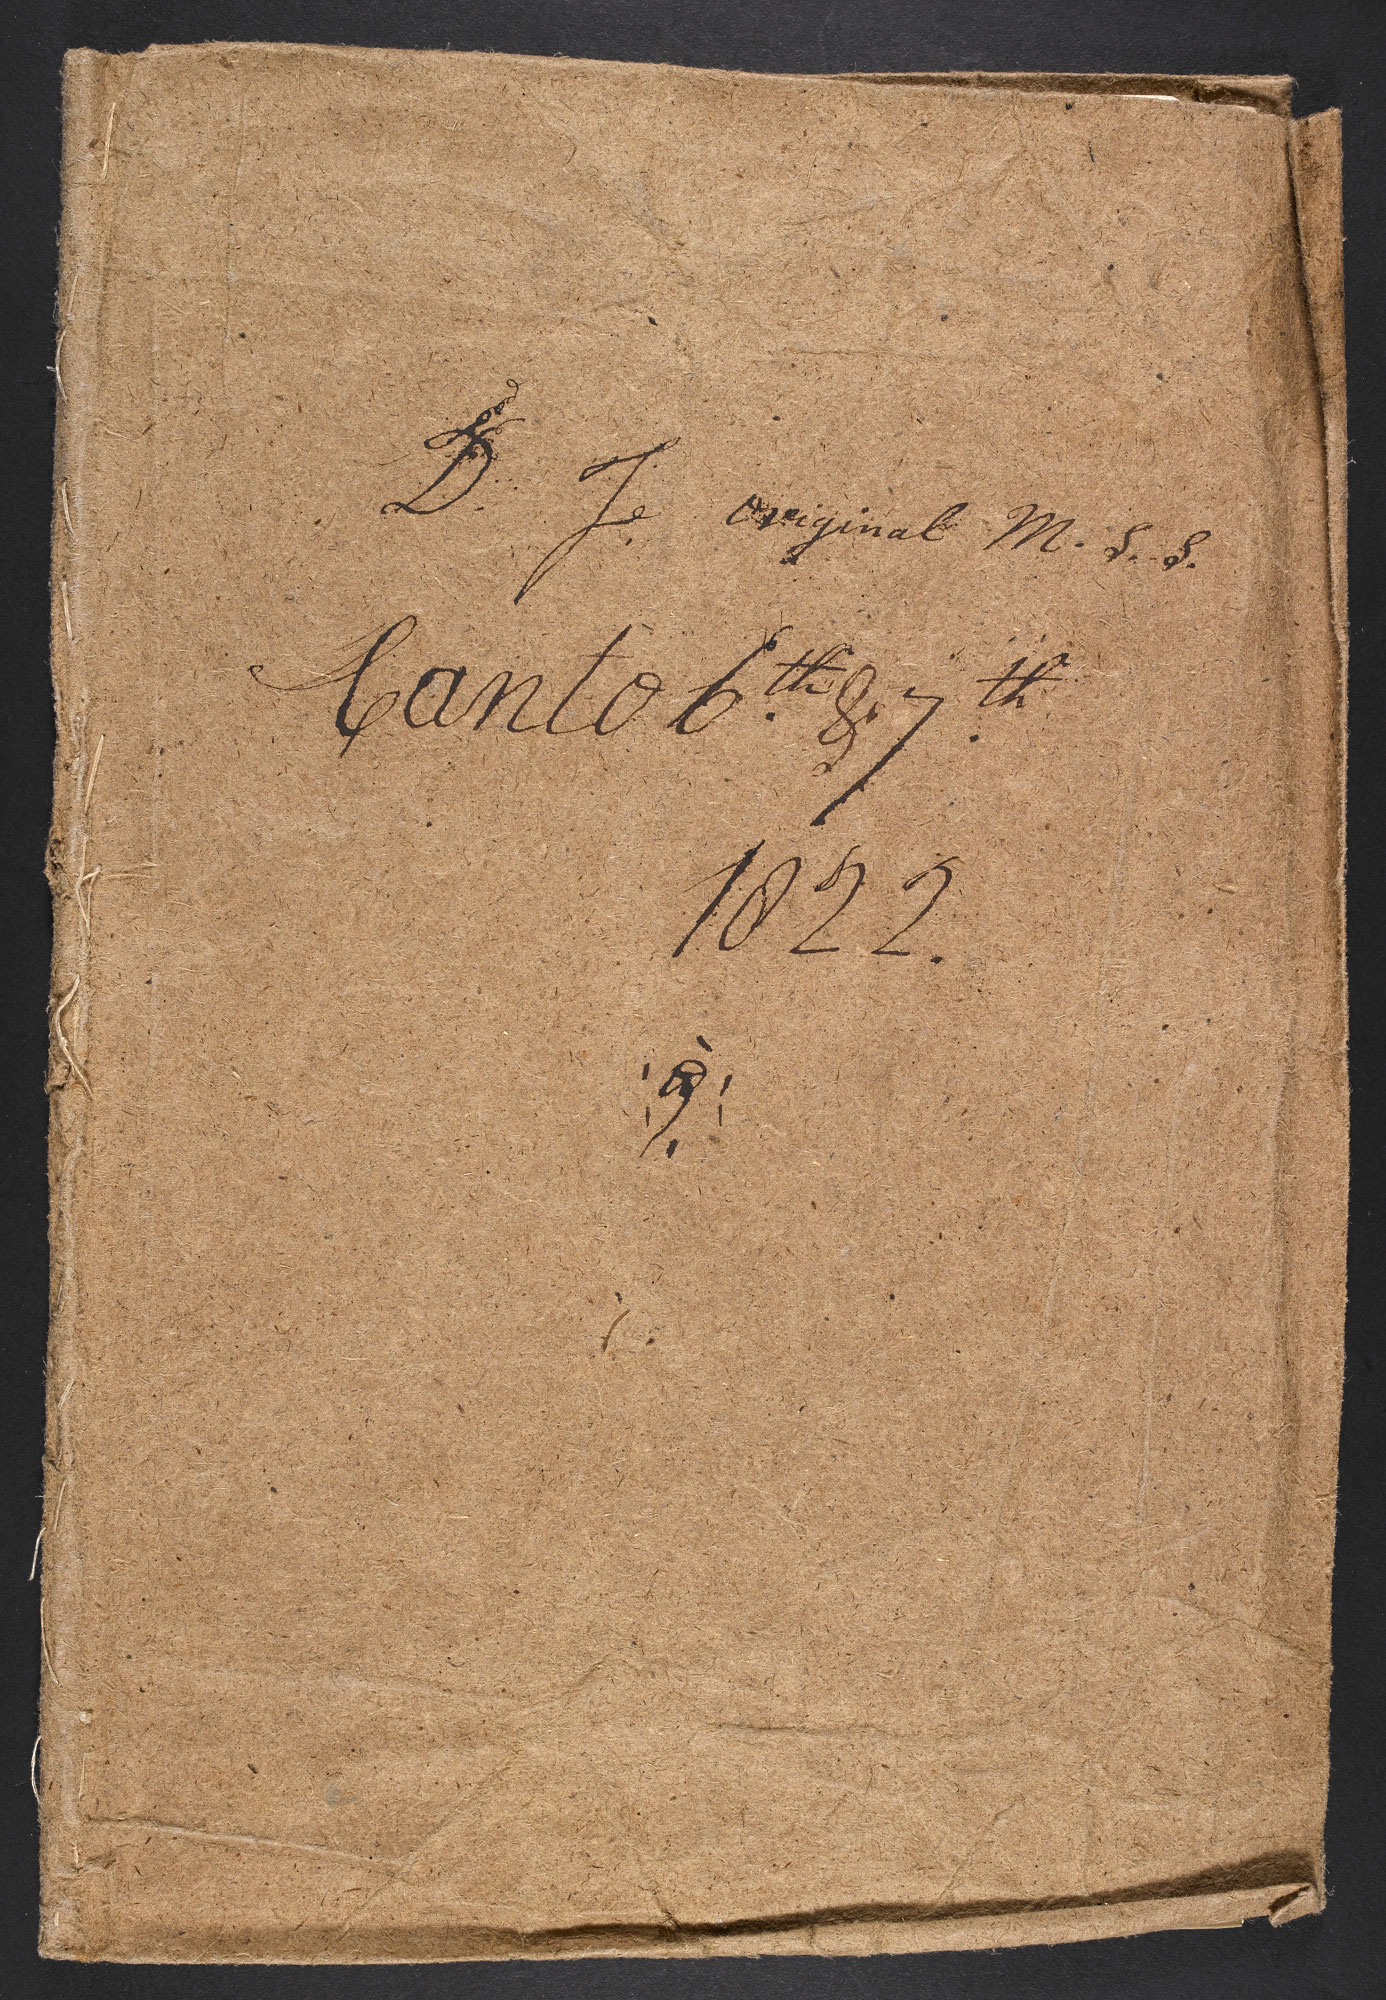 Manuscript draft of Cantos VI and VII of Don Juan by Lord Byron